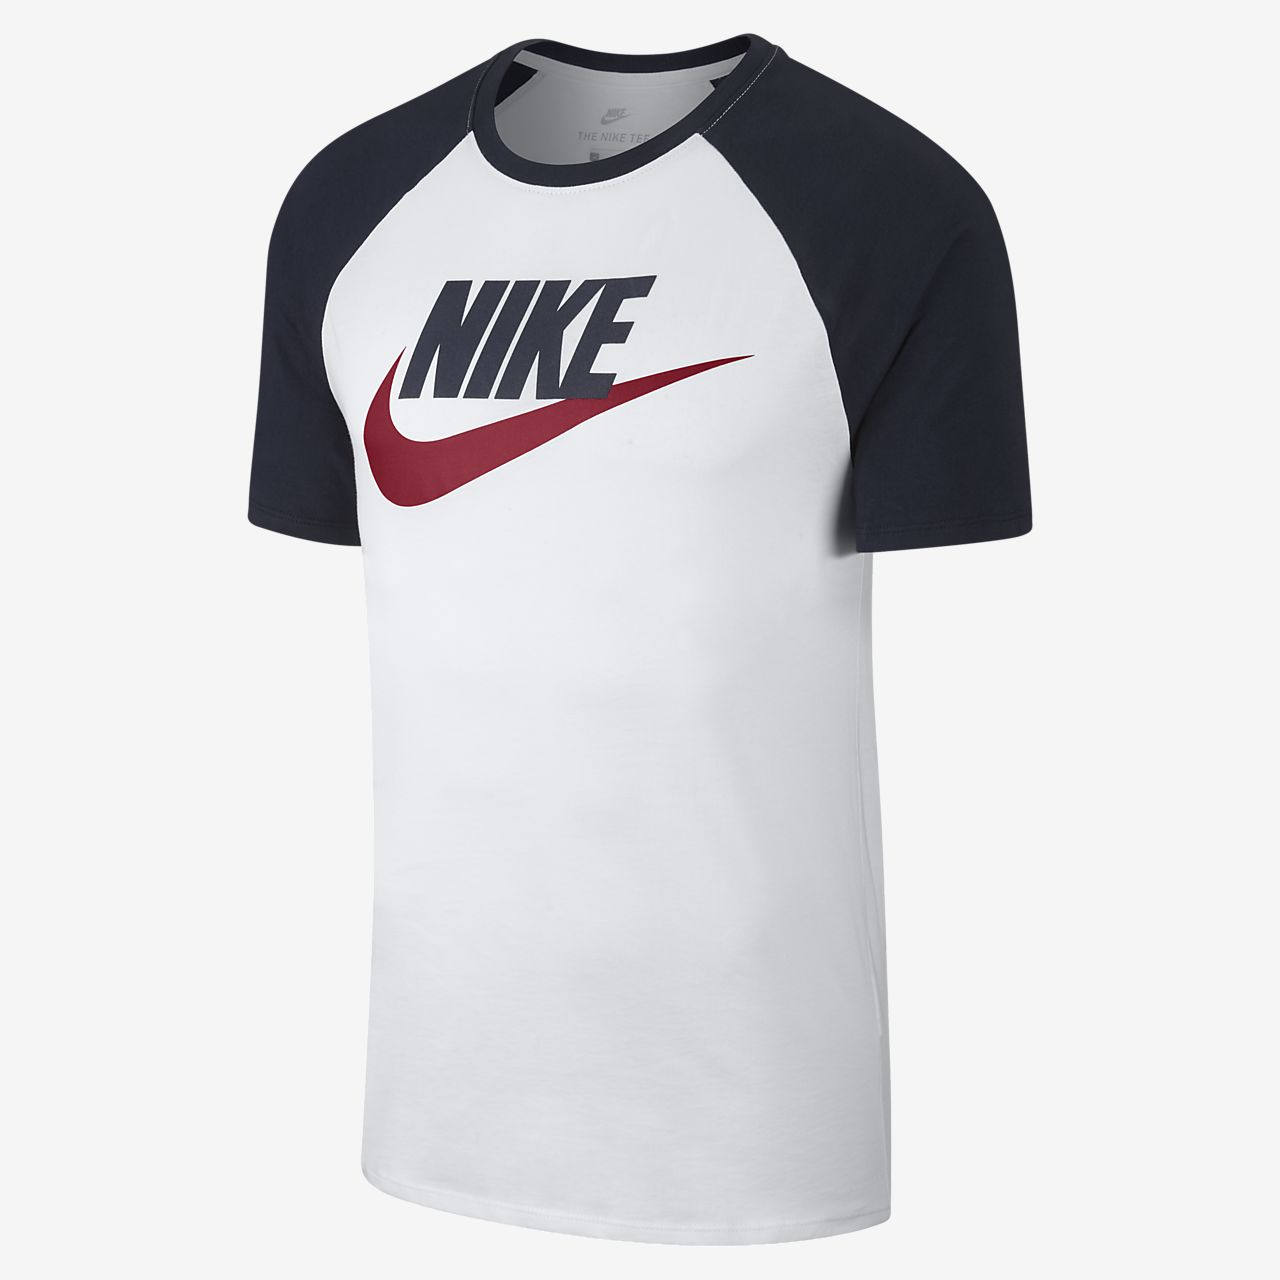 T Shirts For Women Cheap